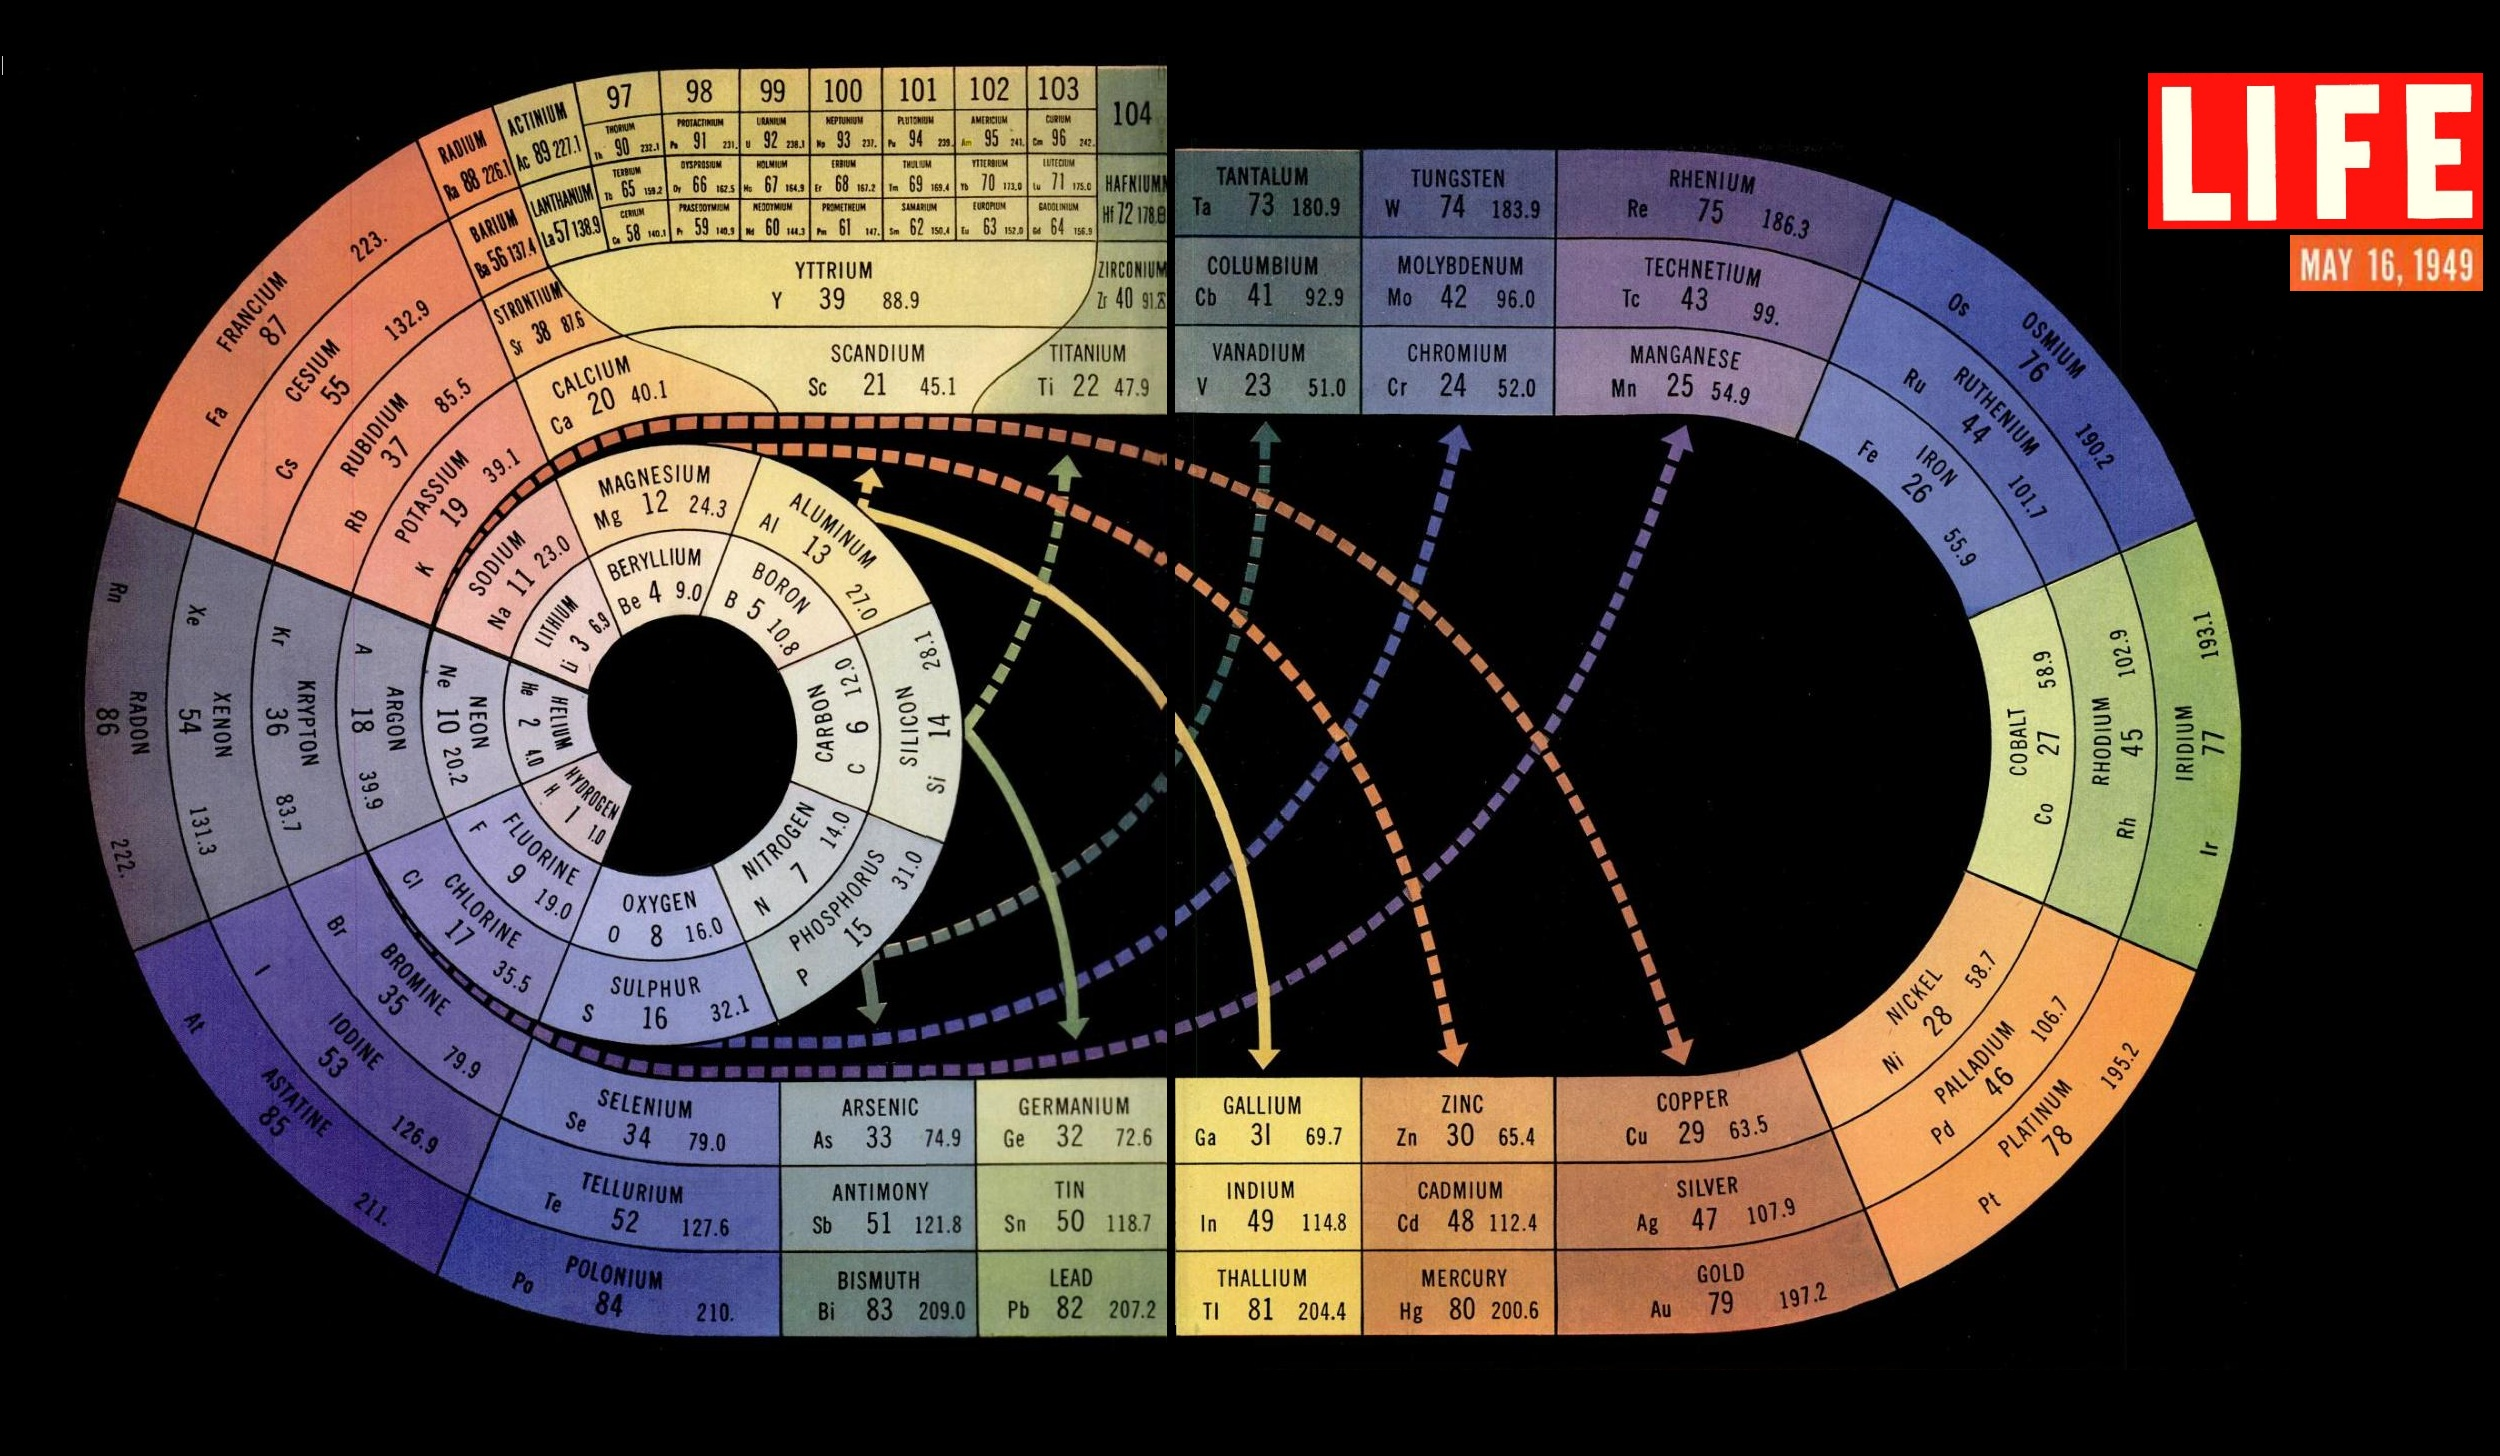 Chemistry this re imagining of the periodic table by life magazine is gorgeous gamestrikefo Image collections